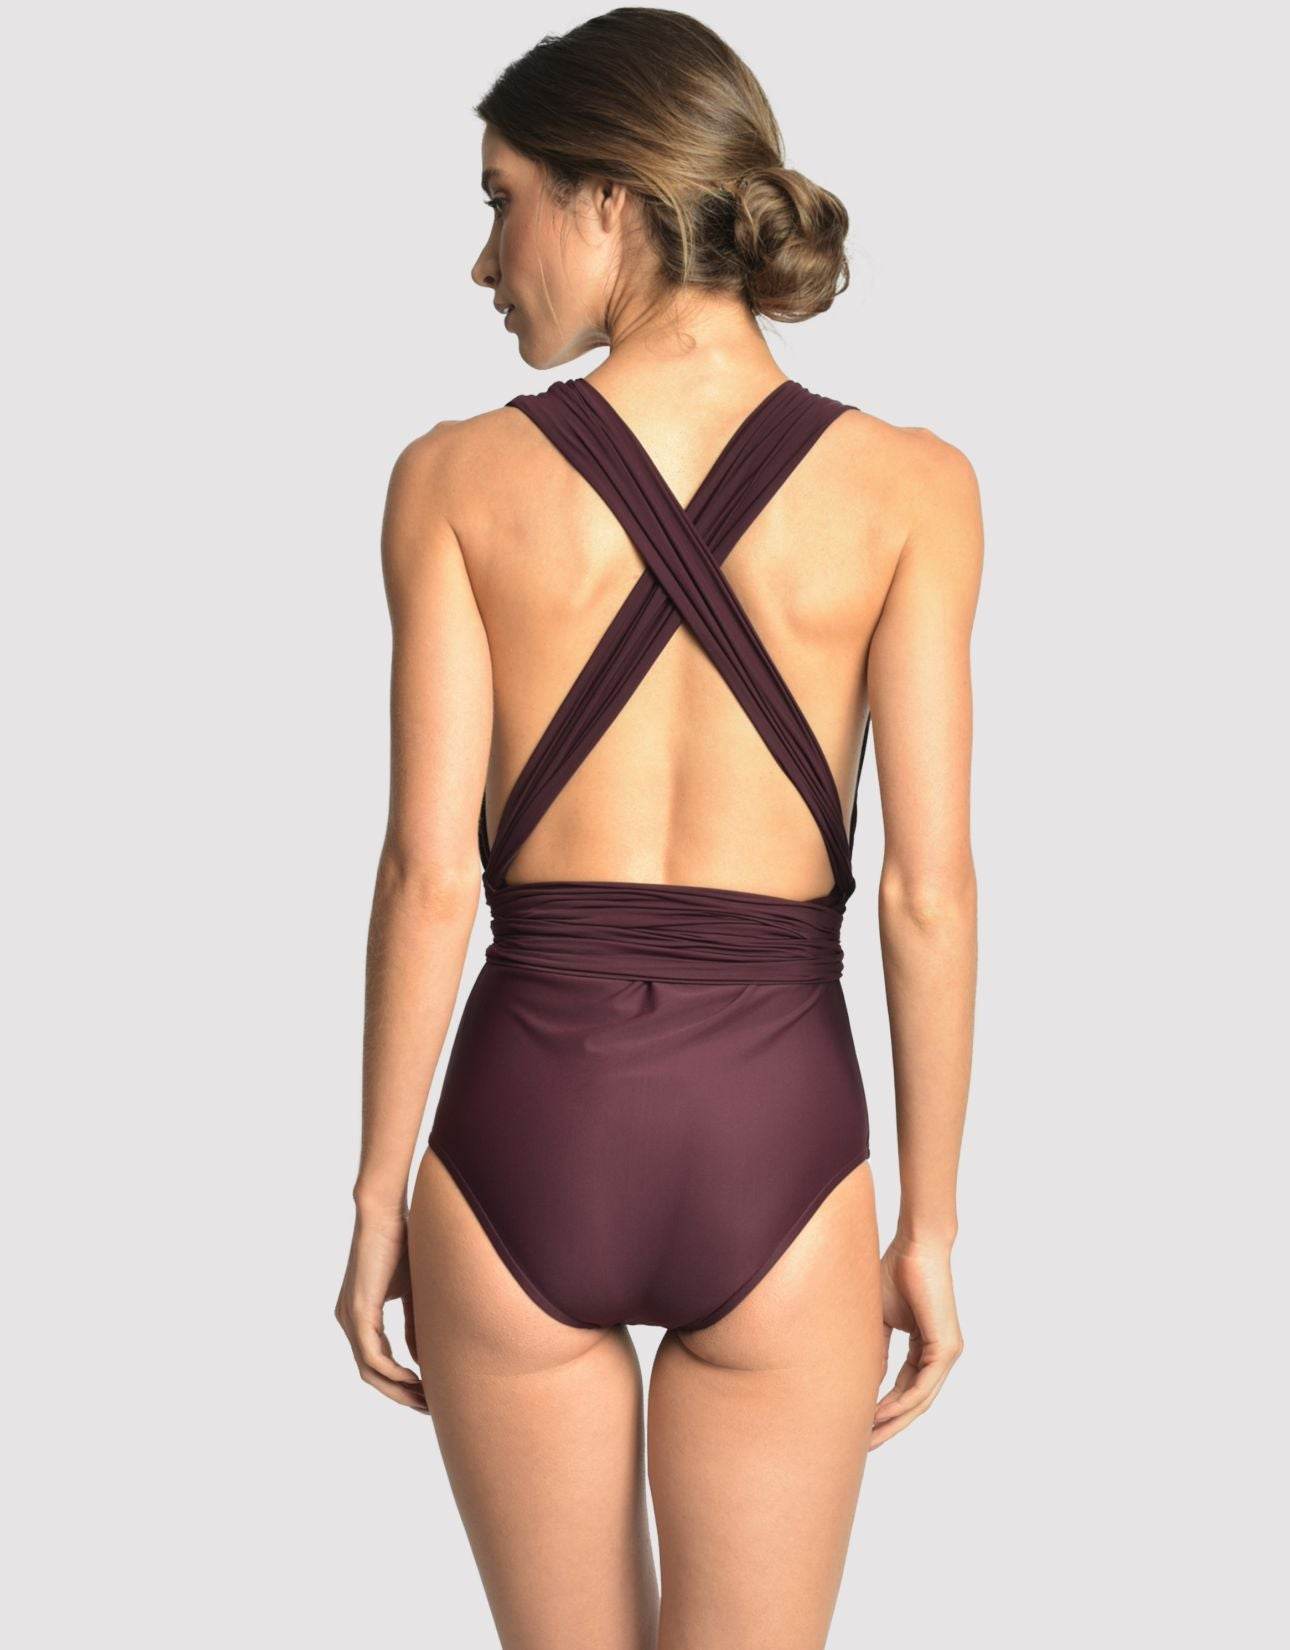 Chic Halter One Piece Swimsuit in Eggplant